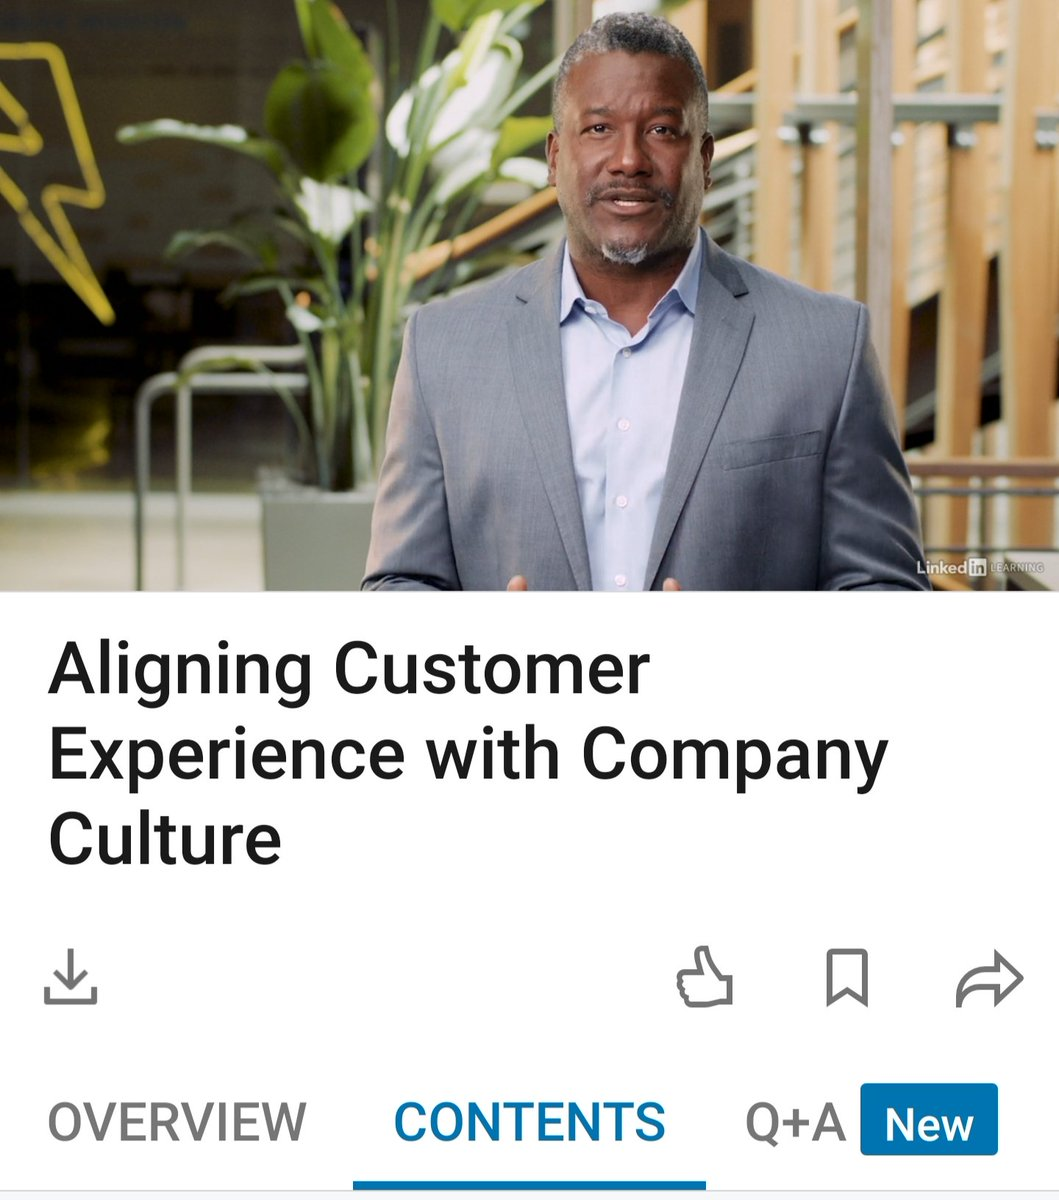 """@CoachBrownlee made learning real fun and time flew by before I knew it! """"Aligning Customer Experience with Company Culture"""" @LinkedIn """"Use empathy to improve EX. Raise employee morale, boost productivity and profits."""" #EmployeeExperience #CustomerExperience #EmployeeEngagementpic.twitter.com/7QSSxxPnQO"""